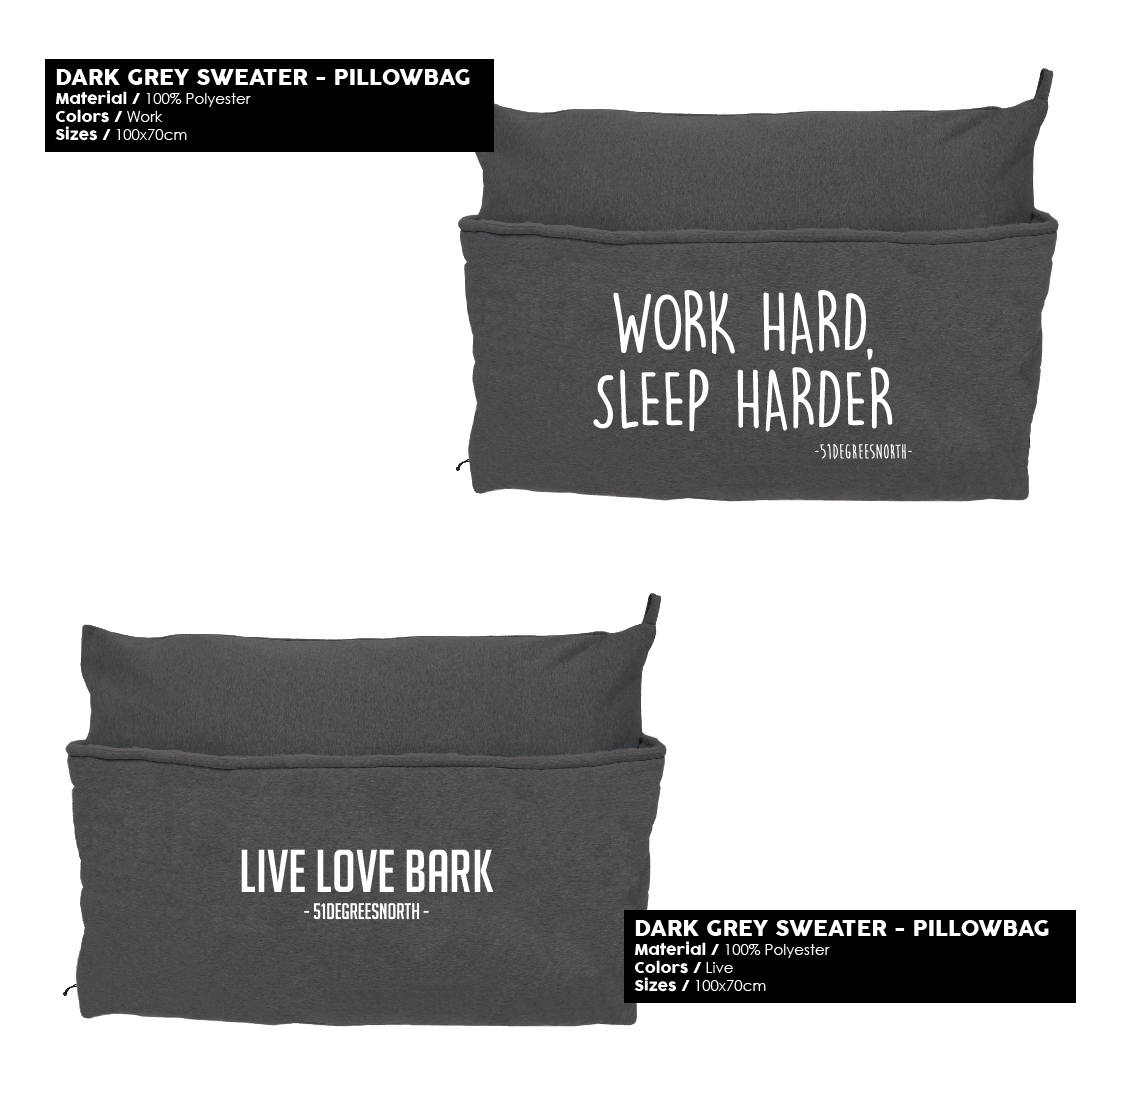 51 Degrees North Sleep Winter 2019 Dark Grey Sweater Pillowbag